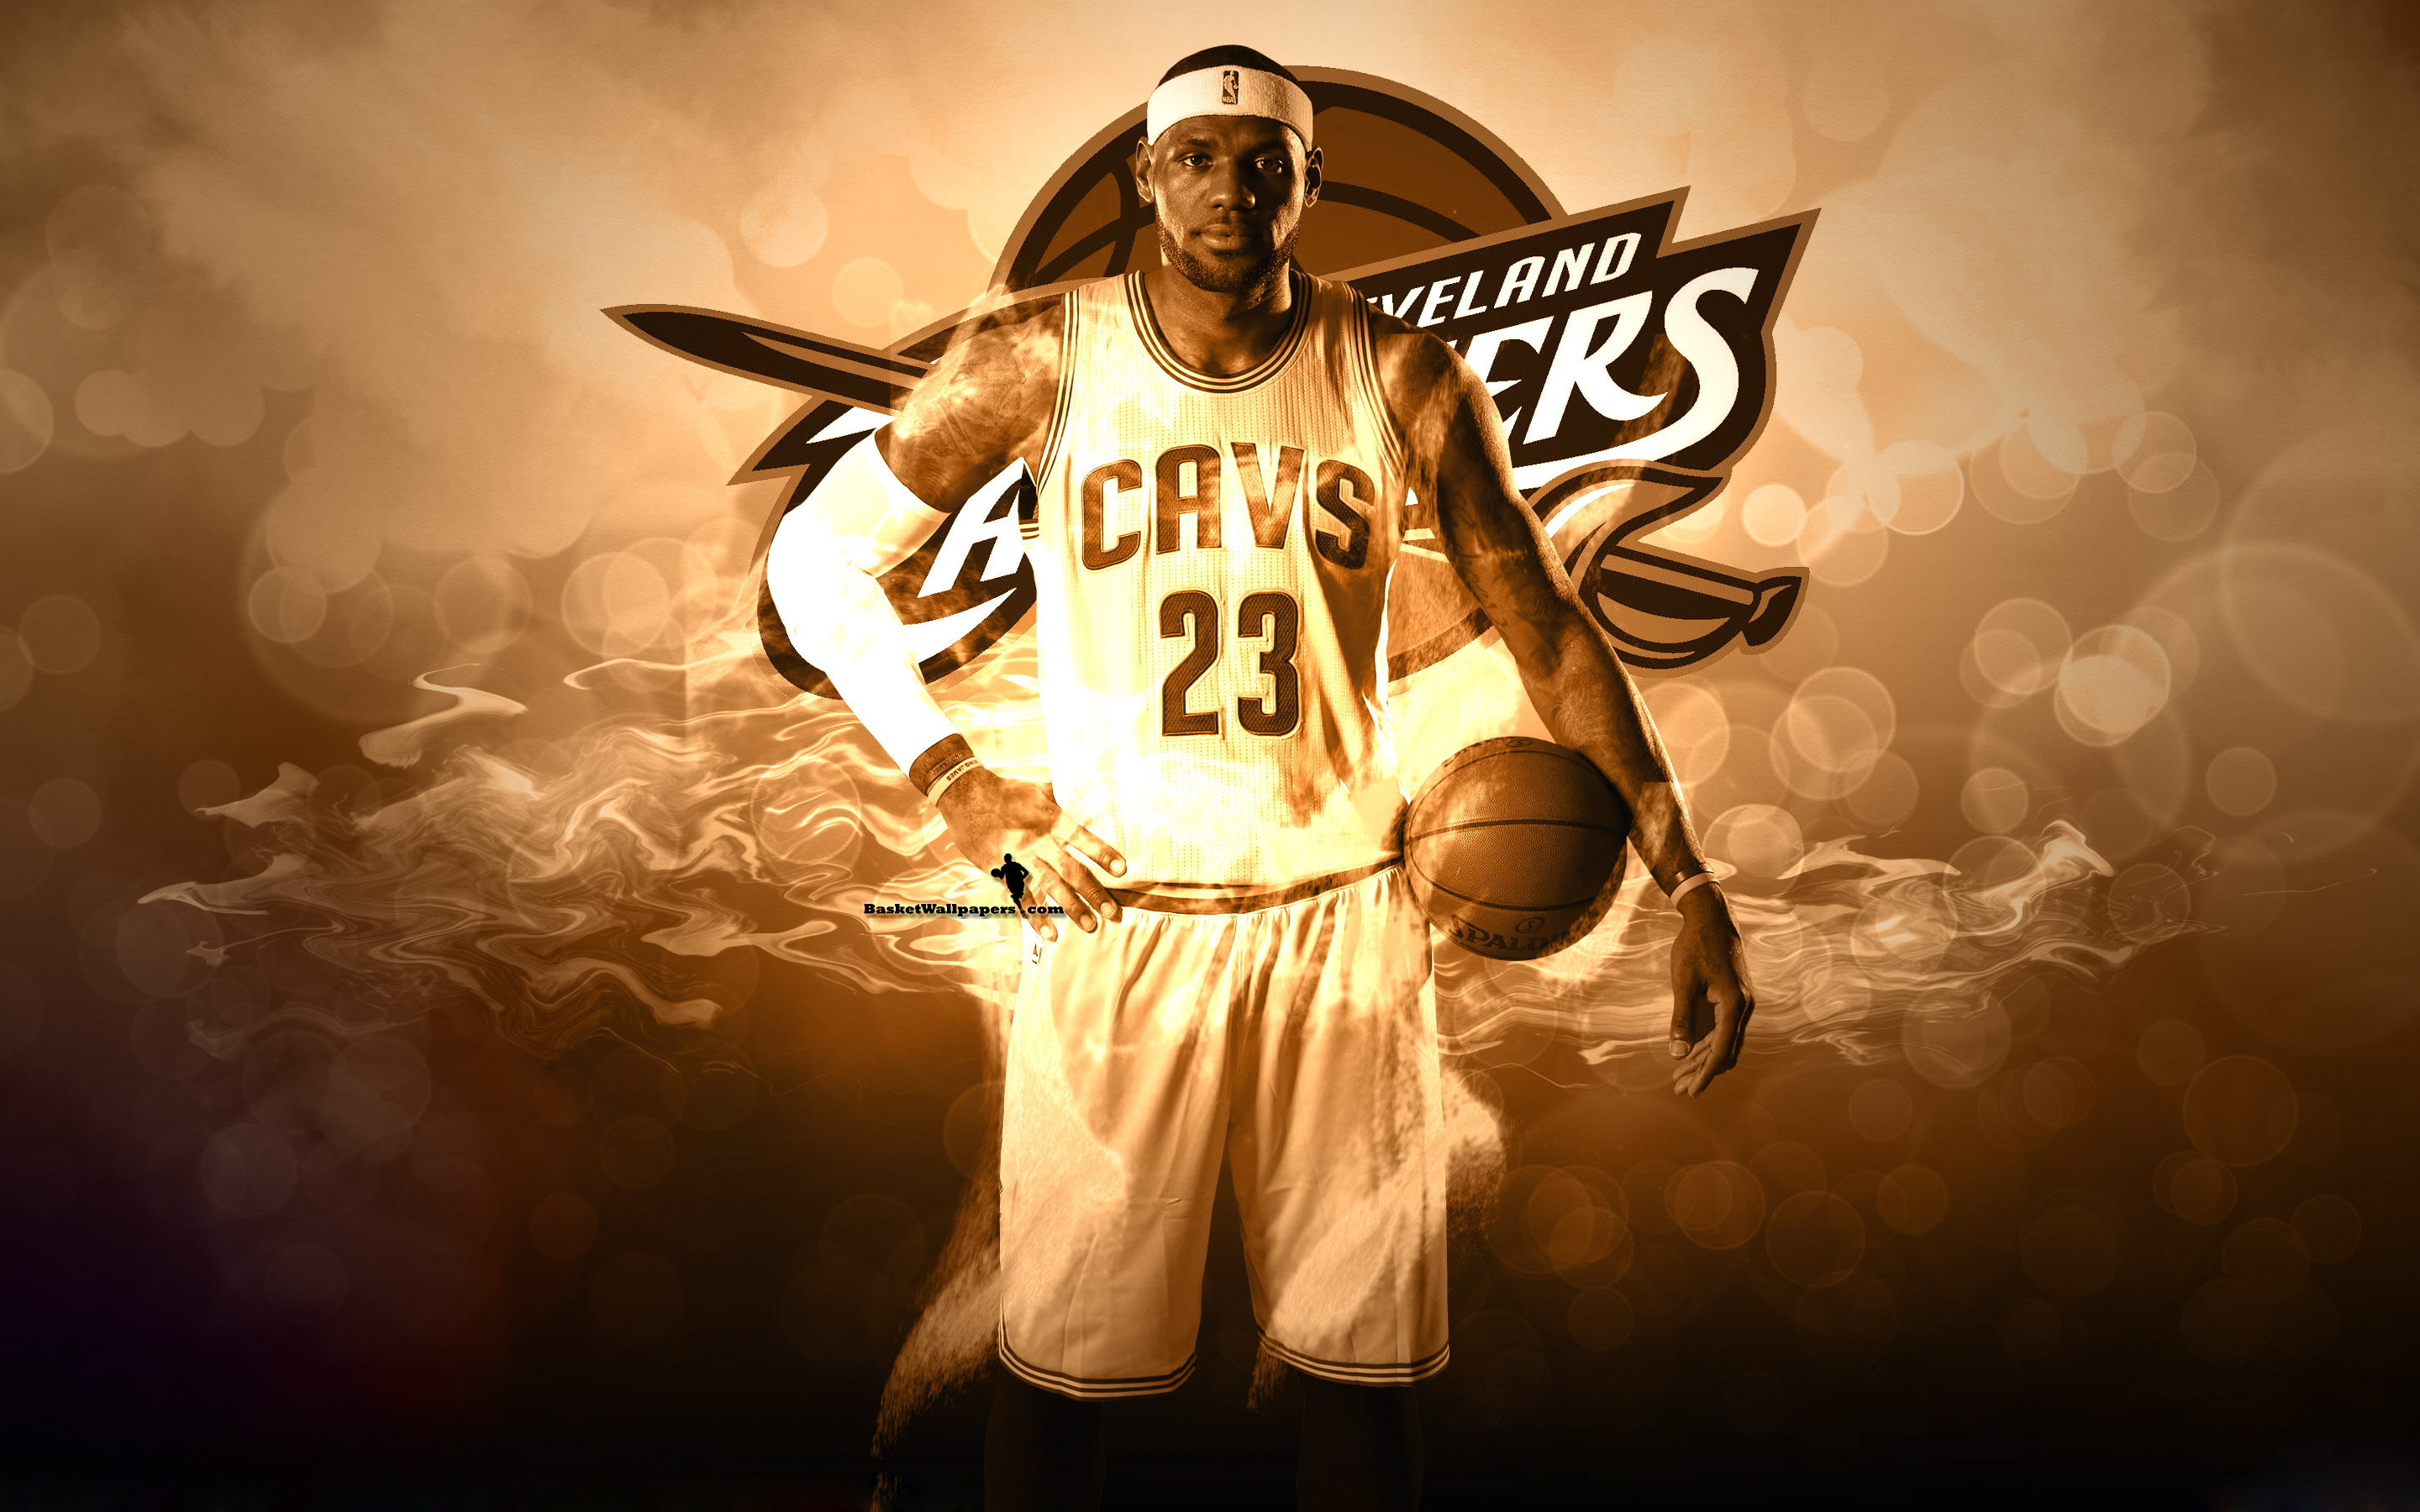 Lebron cavs 2014 wallpaper